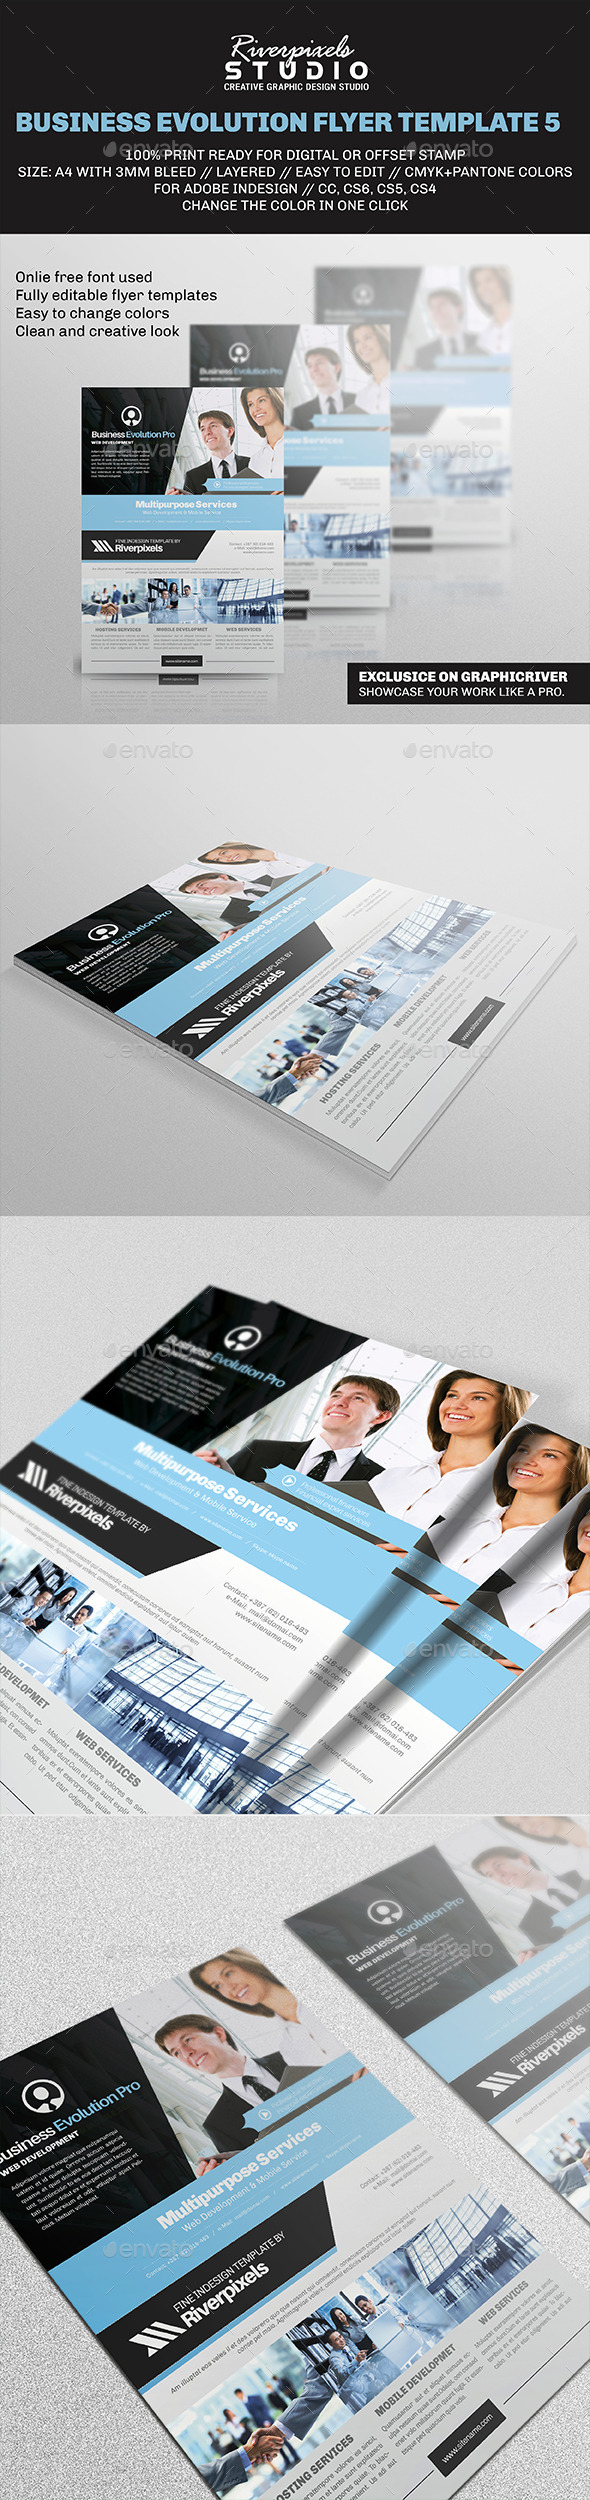 Business Evolution Flyer Template V - Corporate Flyers